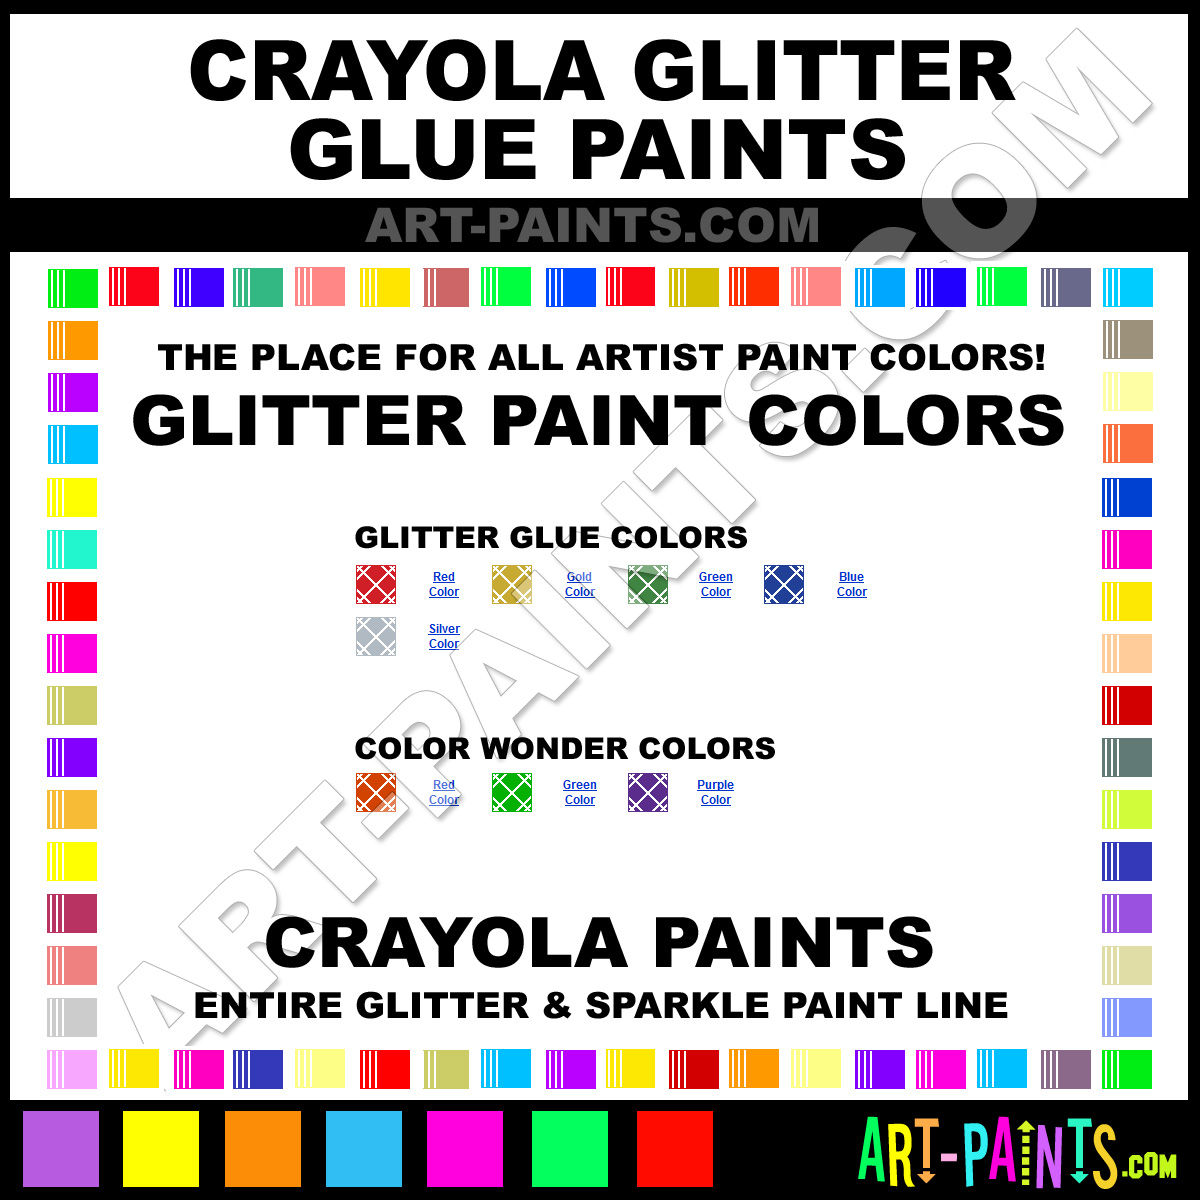 Glitter Glue And Paint Color Inspiration: Crayola Glitter Paint Brands